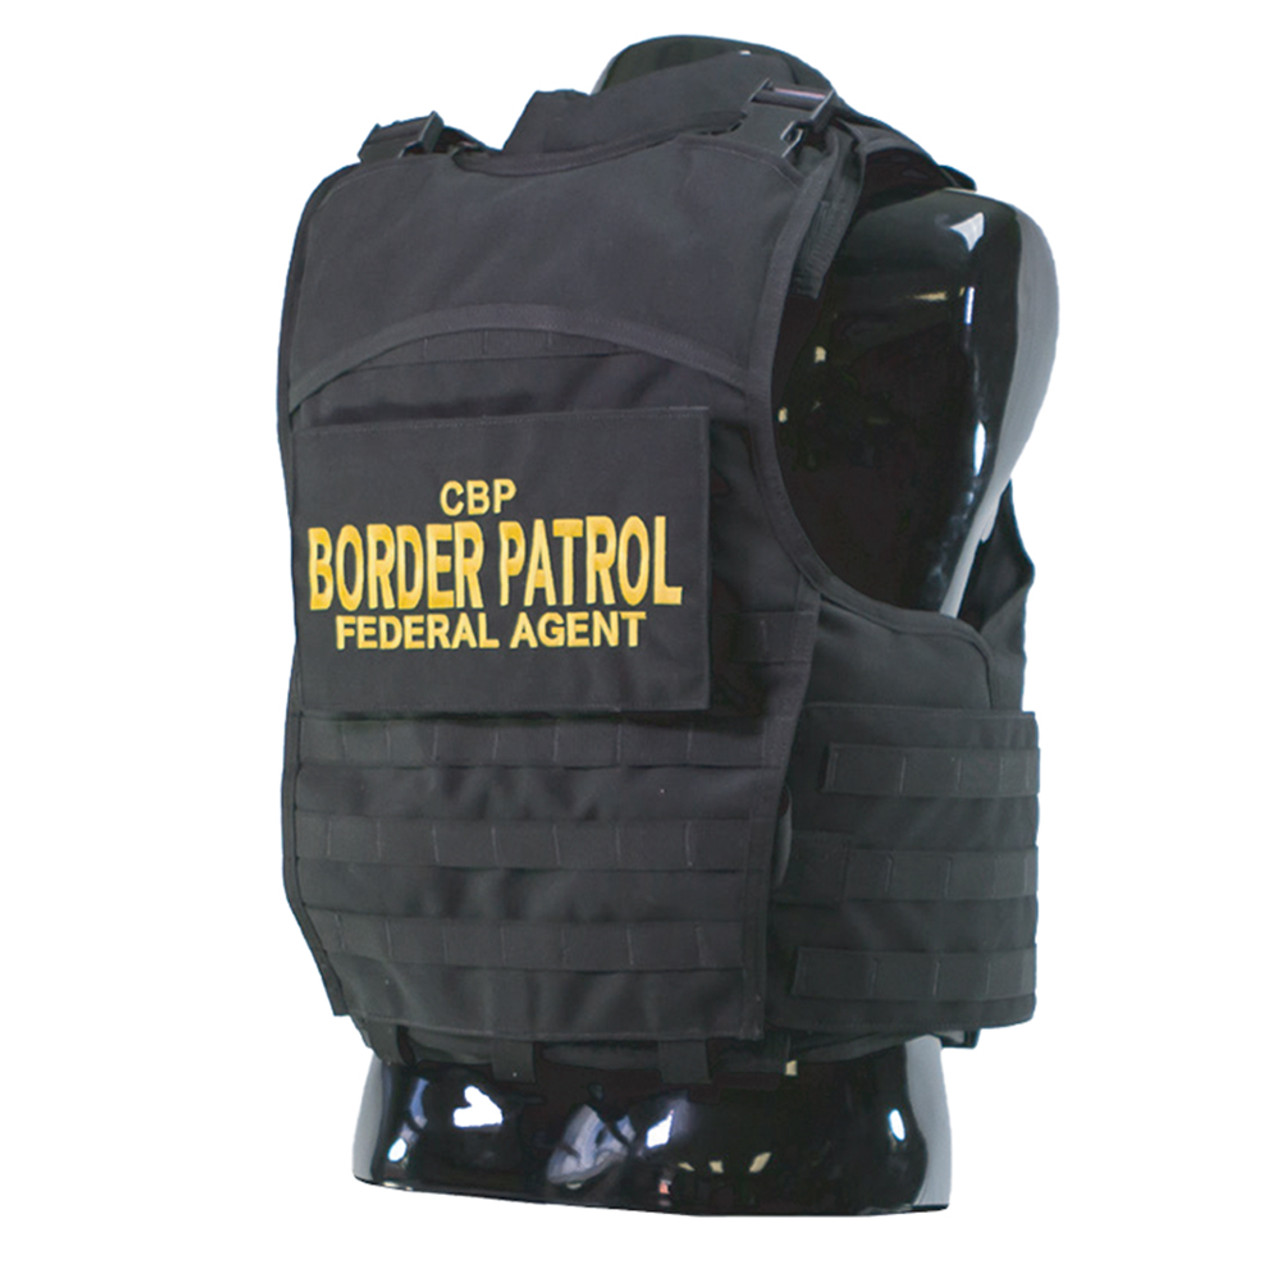 Armor Express DHS TOGC Female Exterior Bulletproof Body Armor Vest with Hidden drag handle located on rear of carrier, Choose Vest Only or Vest and Plates, NIJ Certified - Level II, Or Level III A Threat Levels